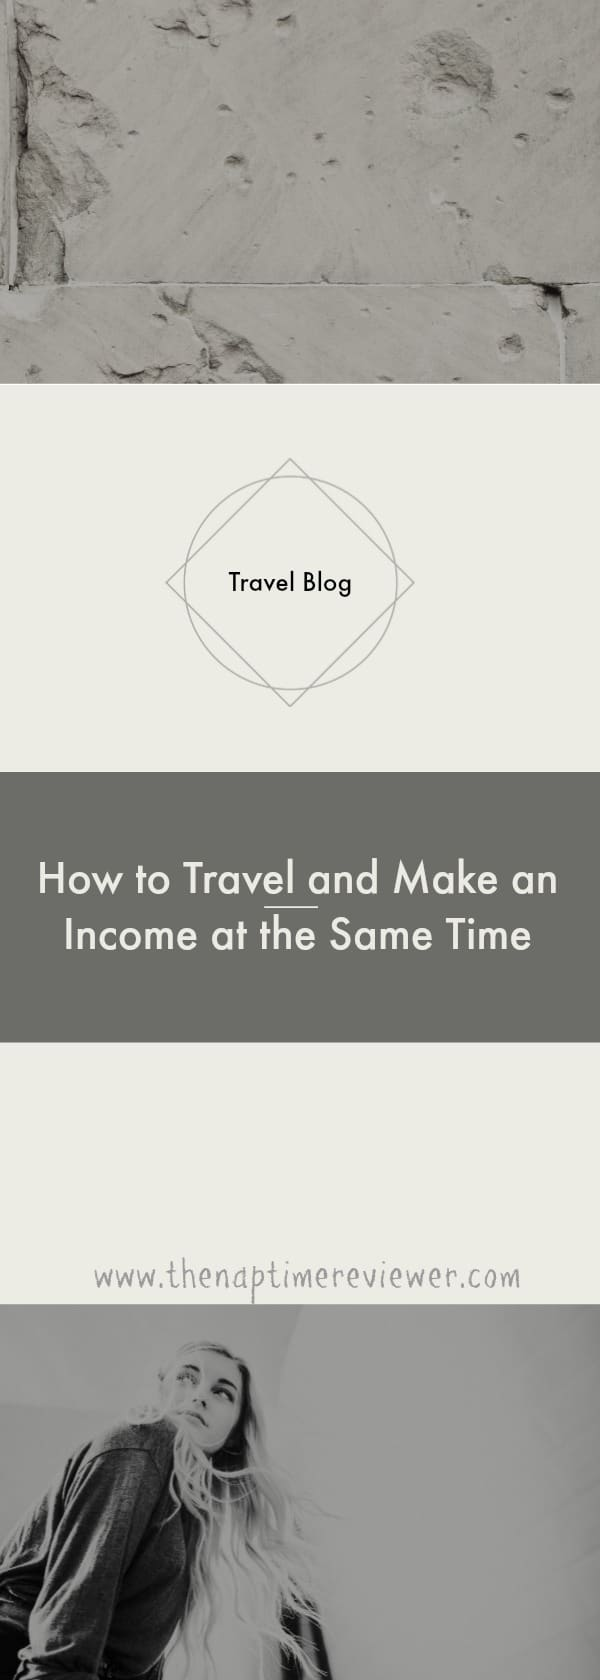 How to Travel and Make an Income at the Same Time